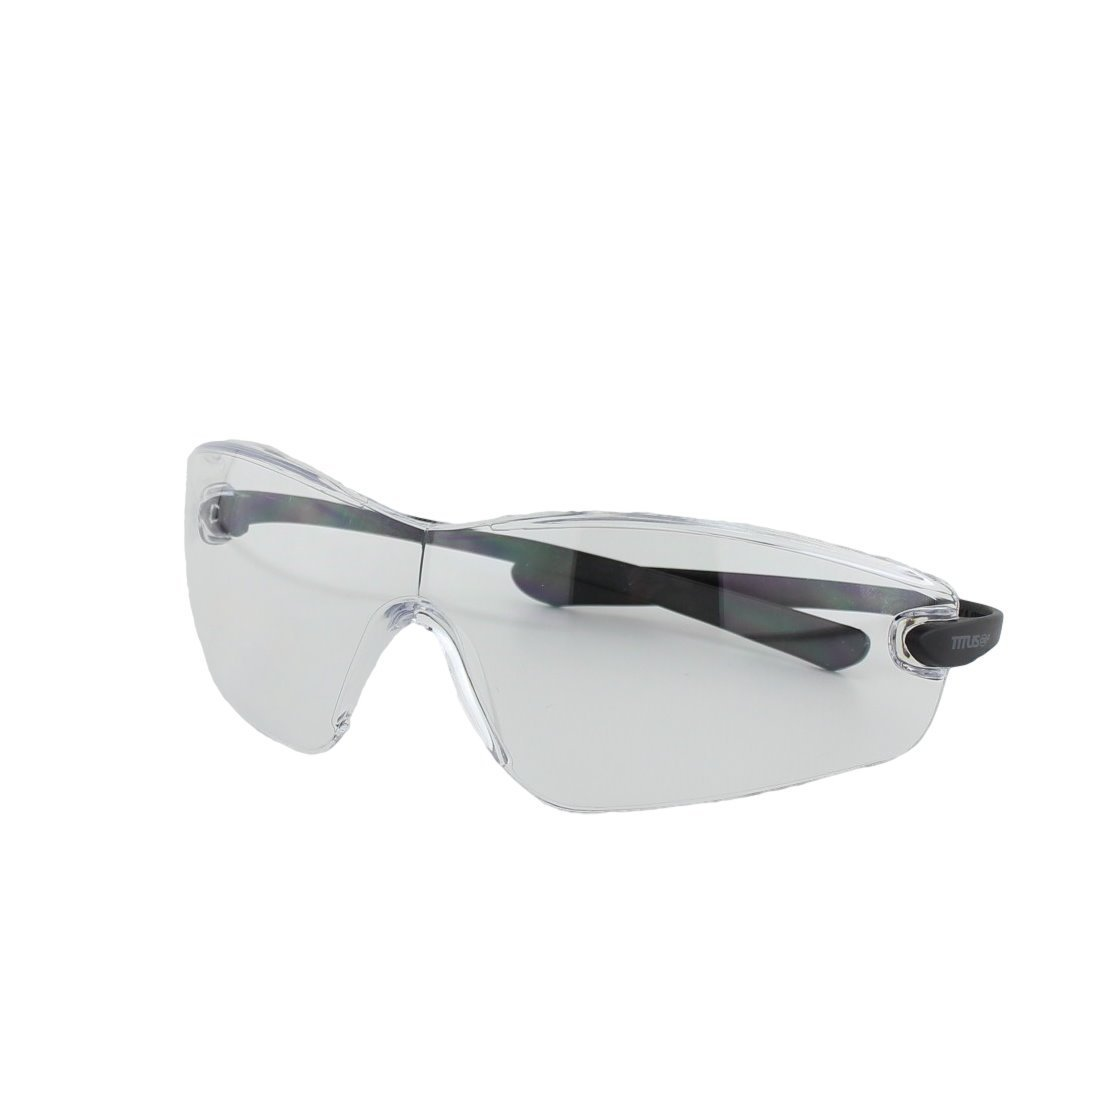 cff4bef097f TITUS Slim-Line Safety Glasses (Without Pouch